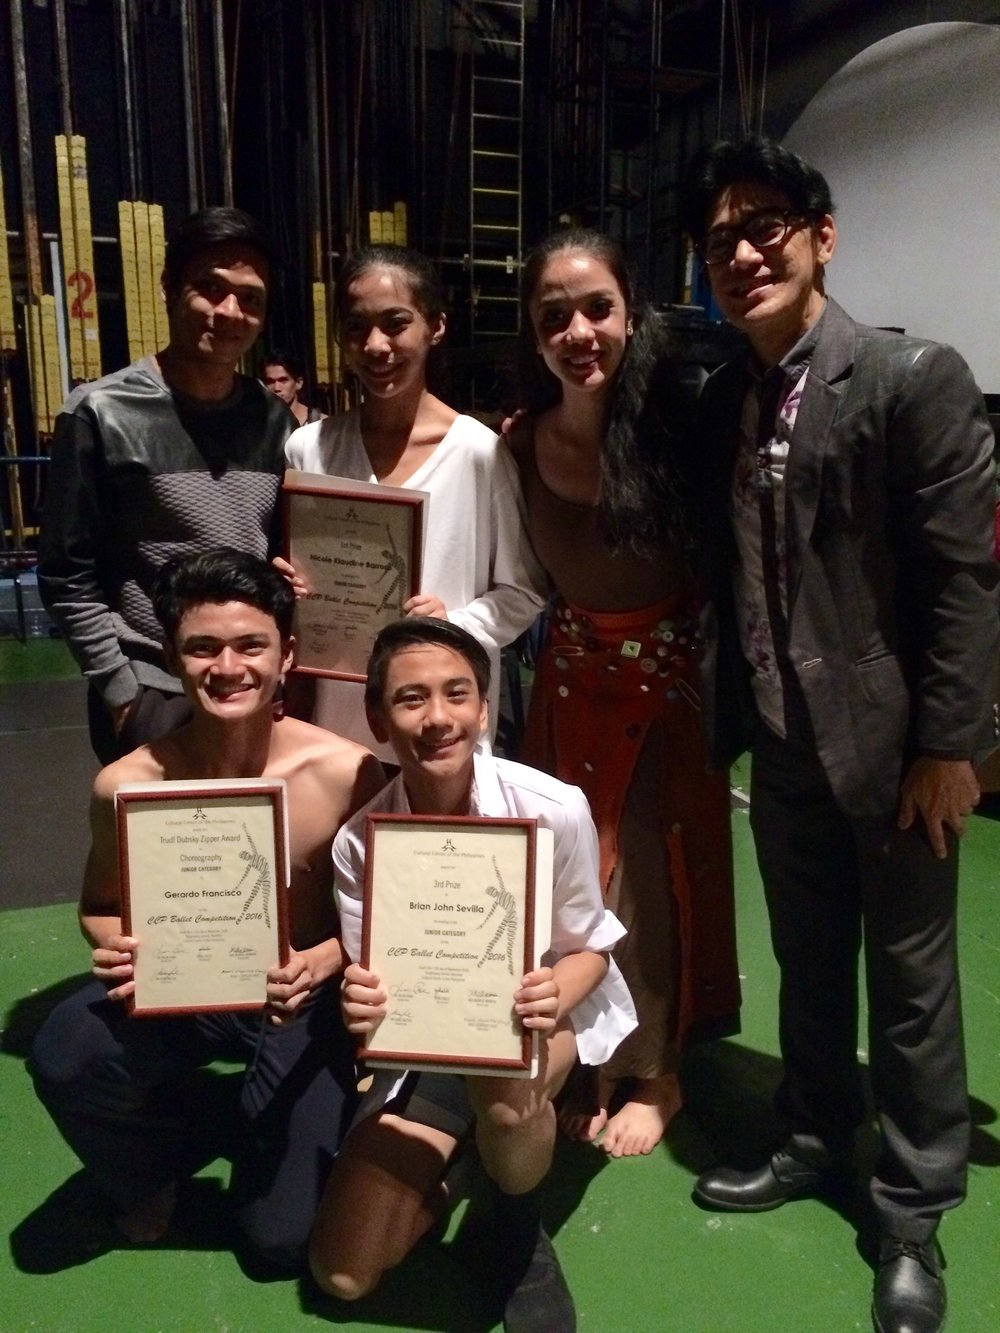 Ballet Manila co-artistic director Osias Barroso (standing, rightmost) congratulates the winners and special awardees backstage: (standing, from left) Gerardo Francisco, Nicole Barroso, Marinette Franco, (kneeling, from left) Joshua Enciso and Brian Sevilla. Photo by Giselle Kasilag